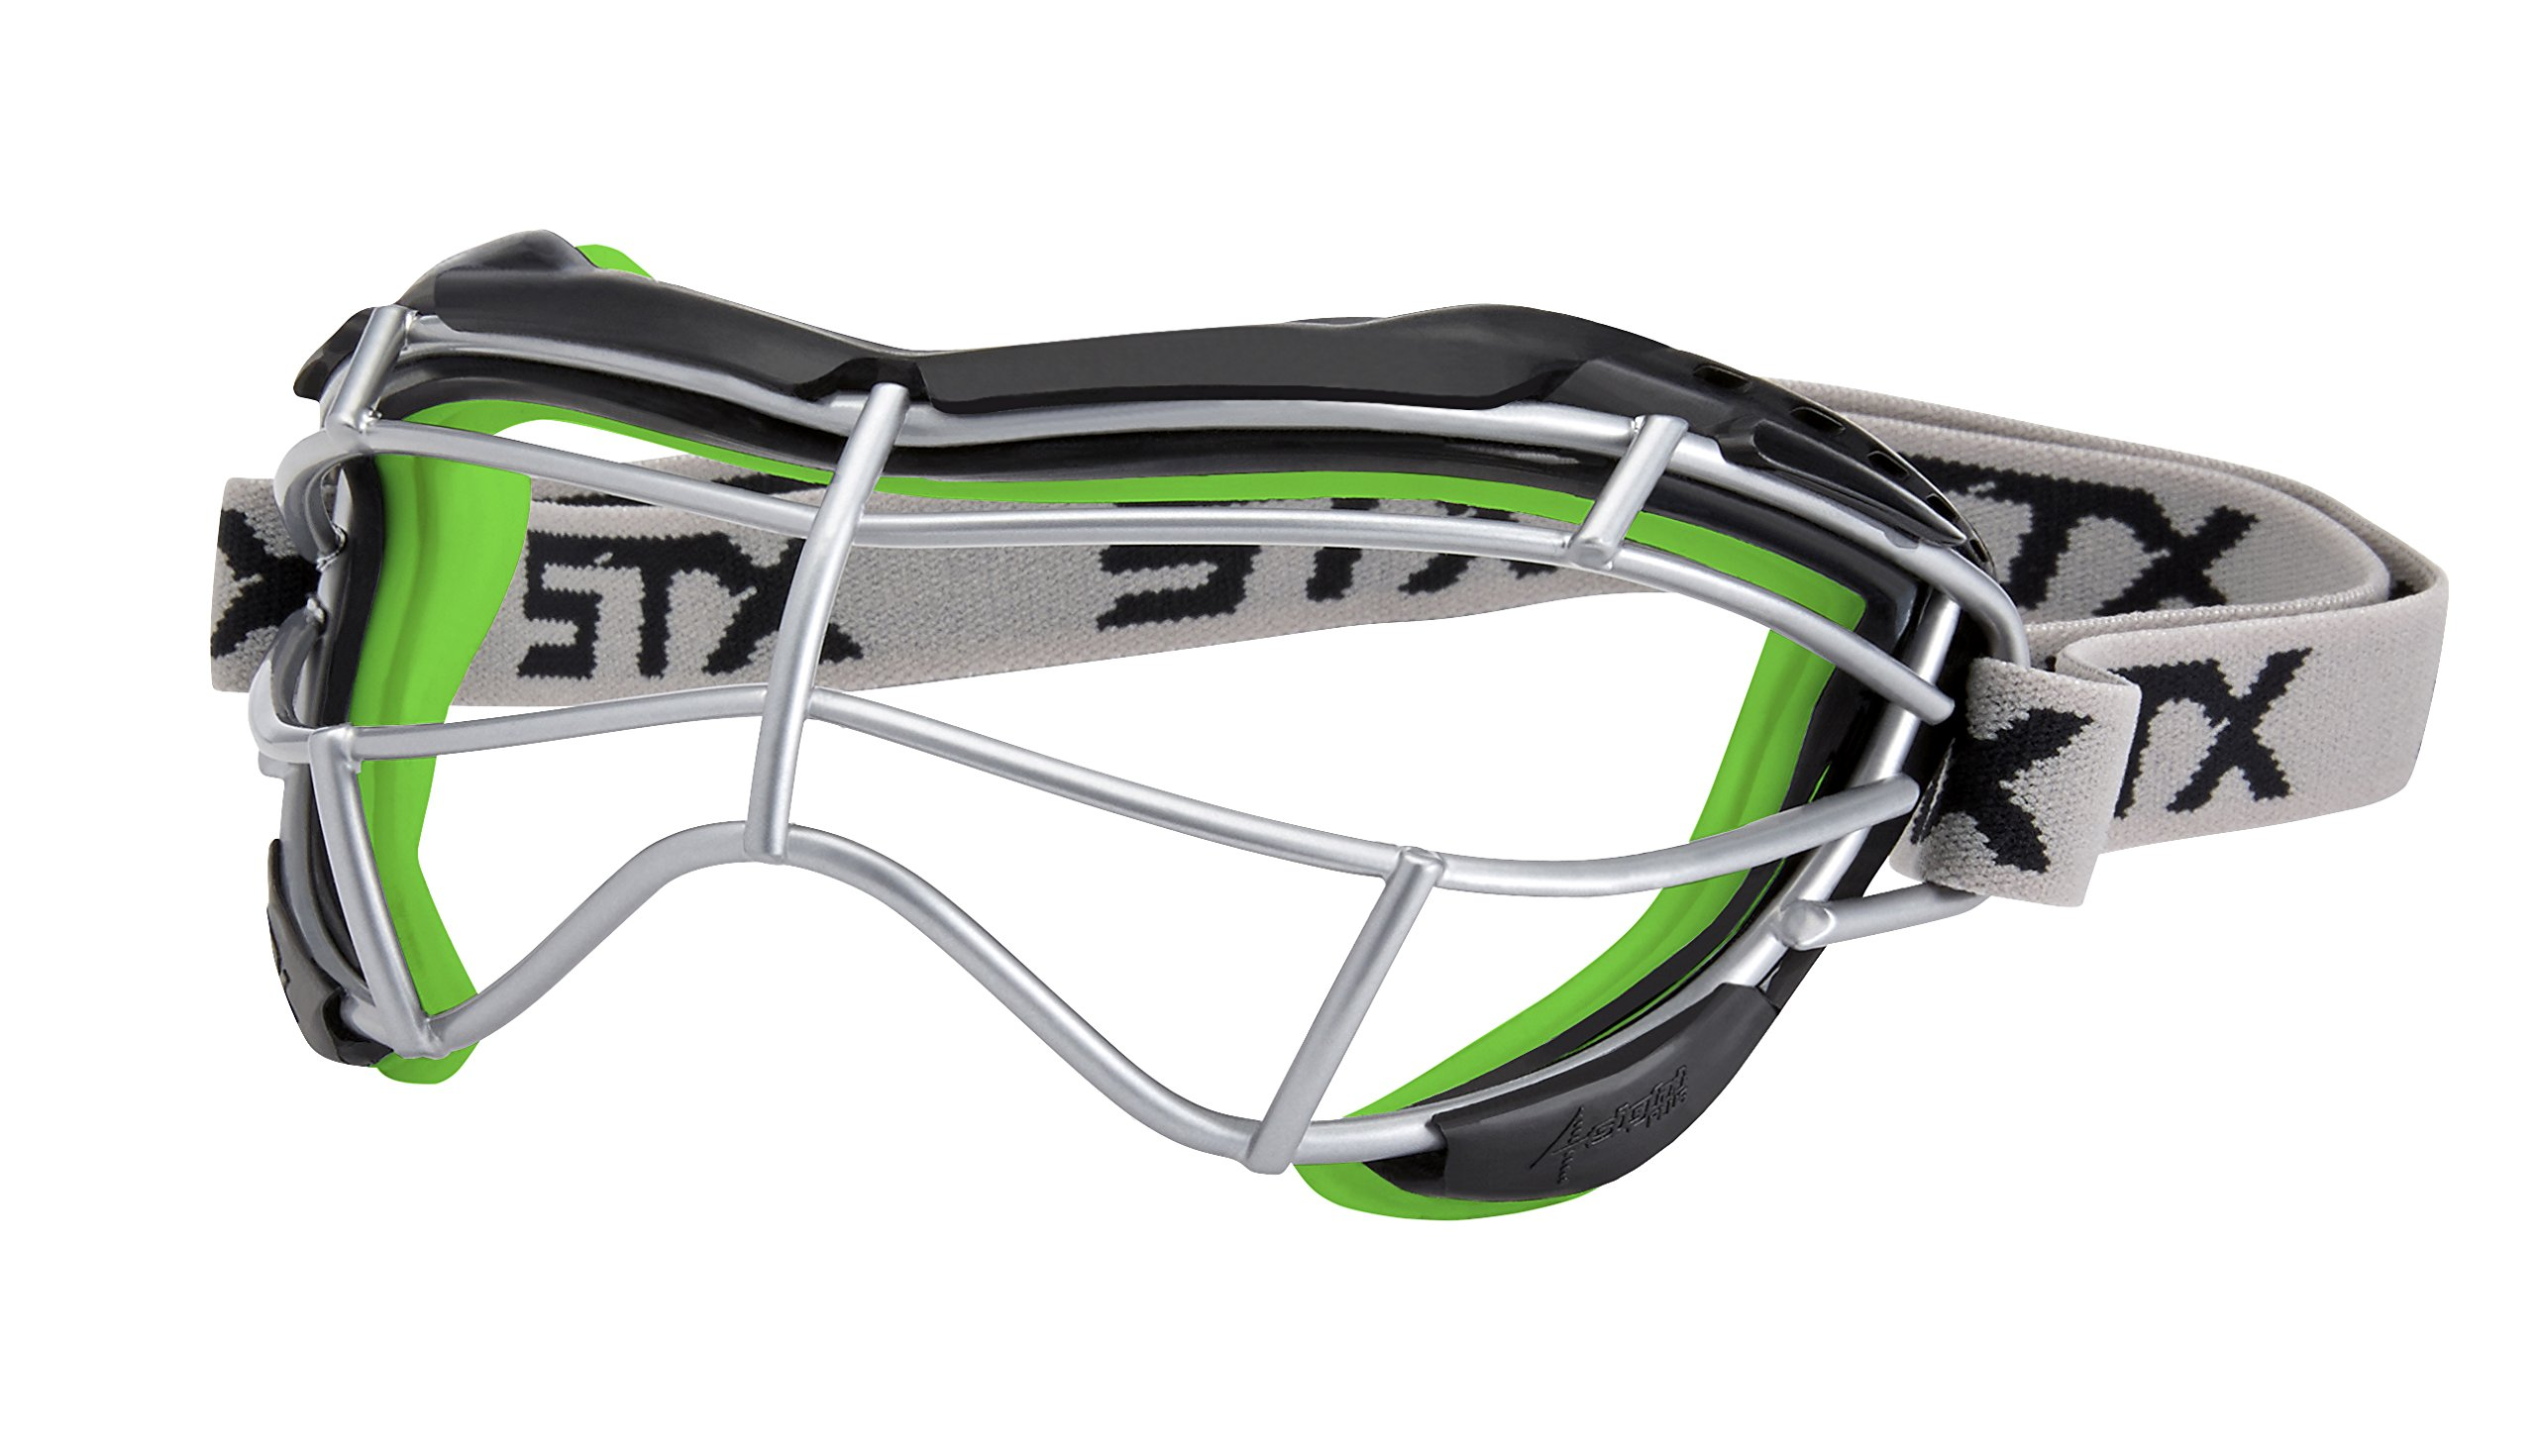 STX Lacrosse Women's 4Sight Focus Goggles, Black/Green